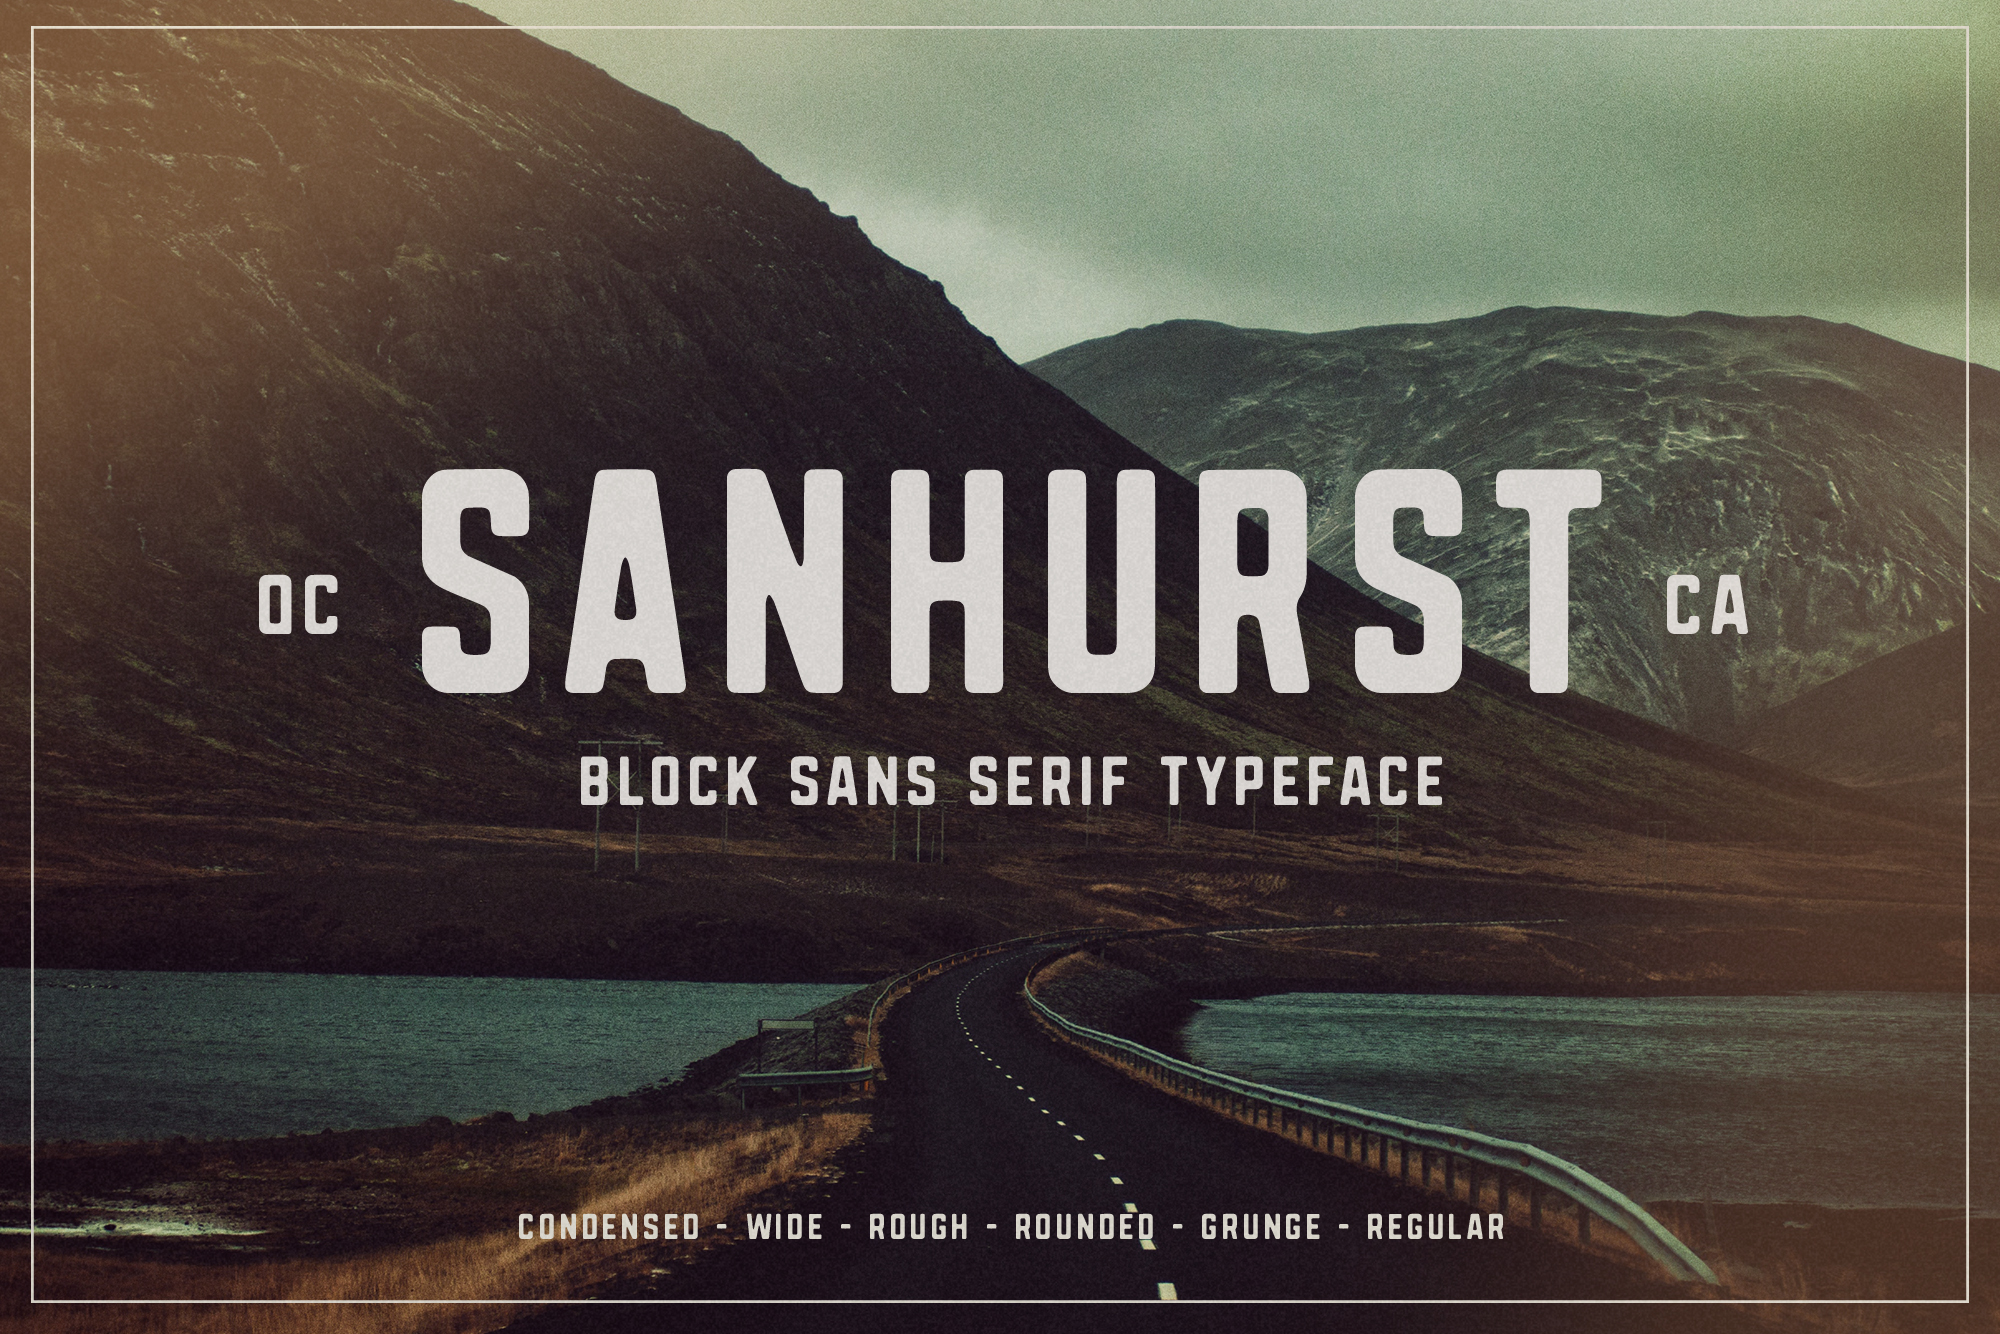 Sanhurst Font Family - Available on Creative MarketAvailable on Font Spring